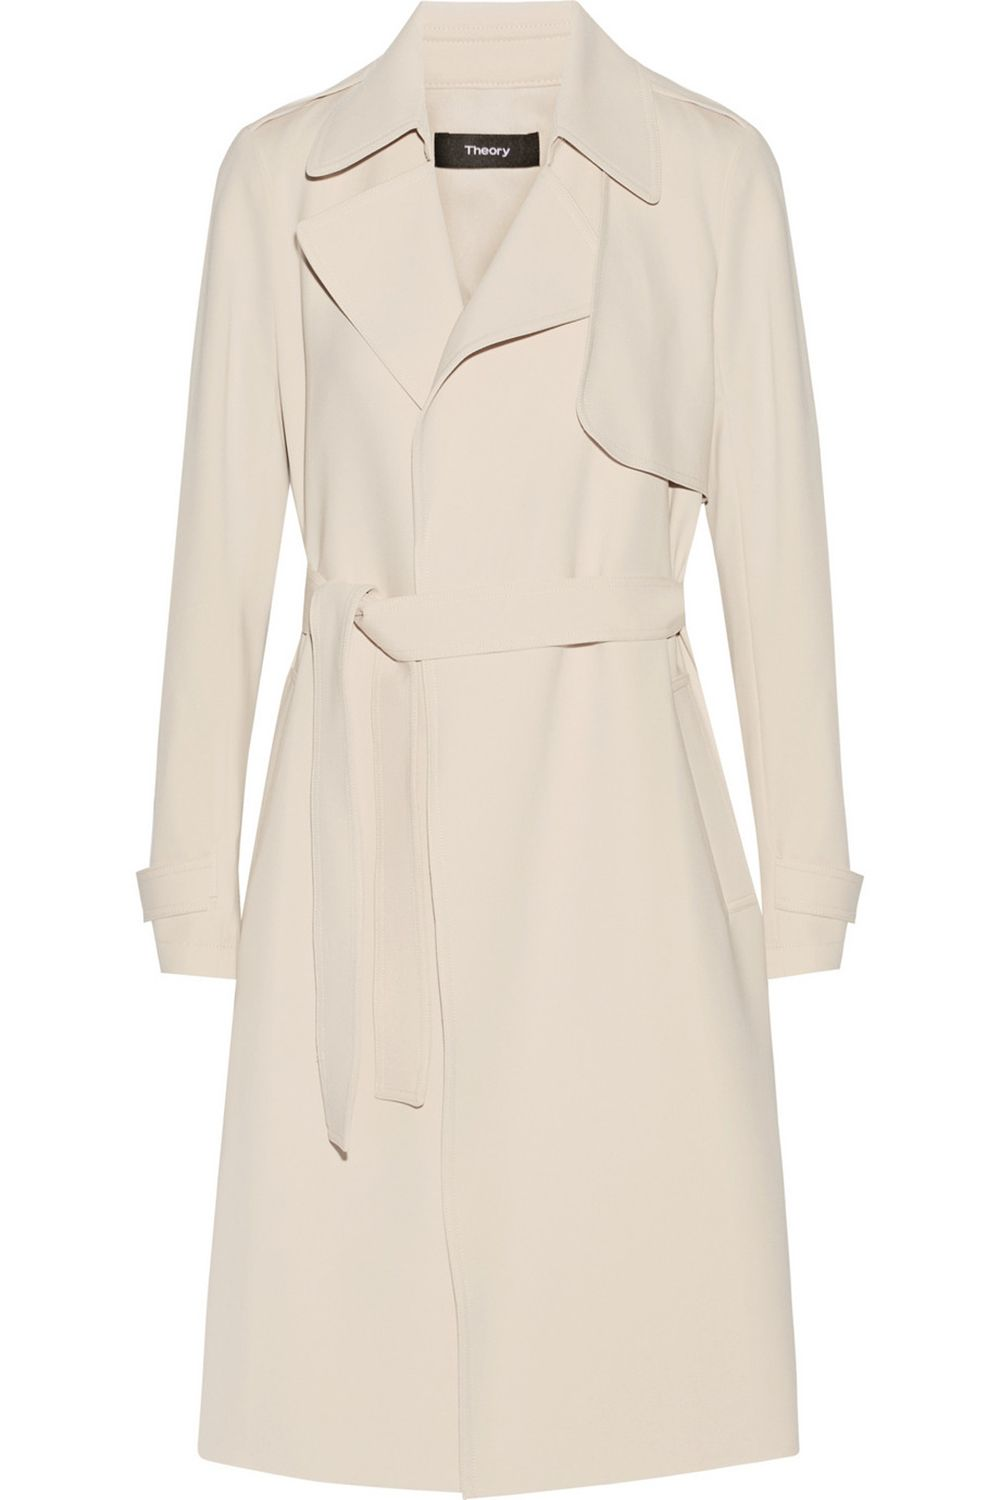 "<p>Theory trench, $595, <a href=""http://www.theory.com/OAKLANE-B/G0109402,default,pd.html?dwvar_G0109402_color=001&start=2&cgid=womens-outerwear"" target=""_blank"">theory.com</a>.</p>"